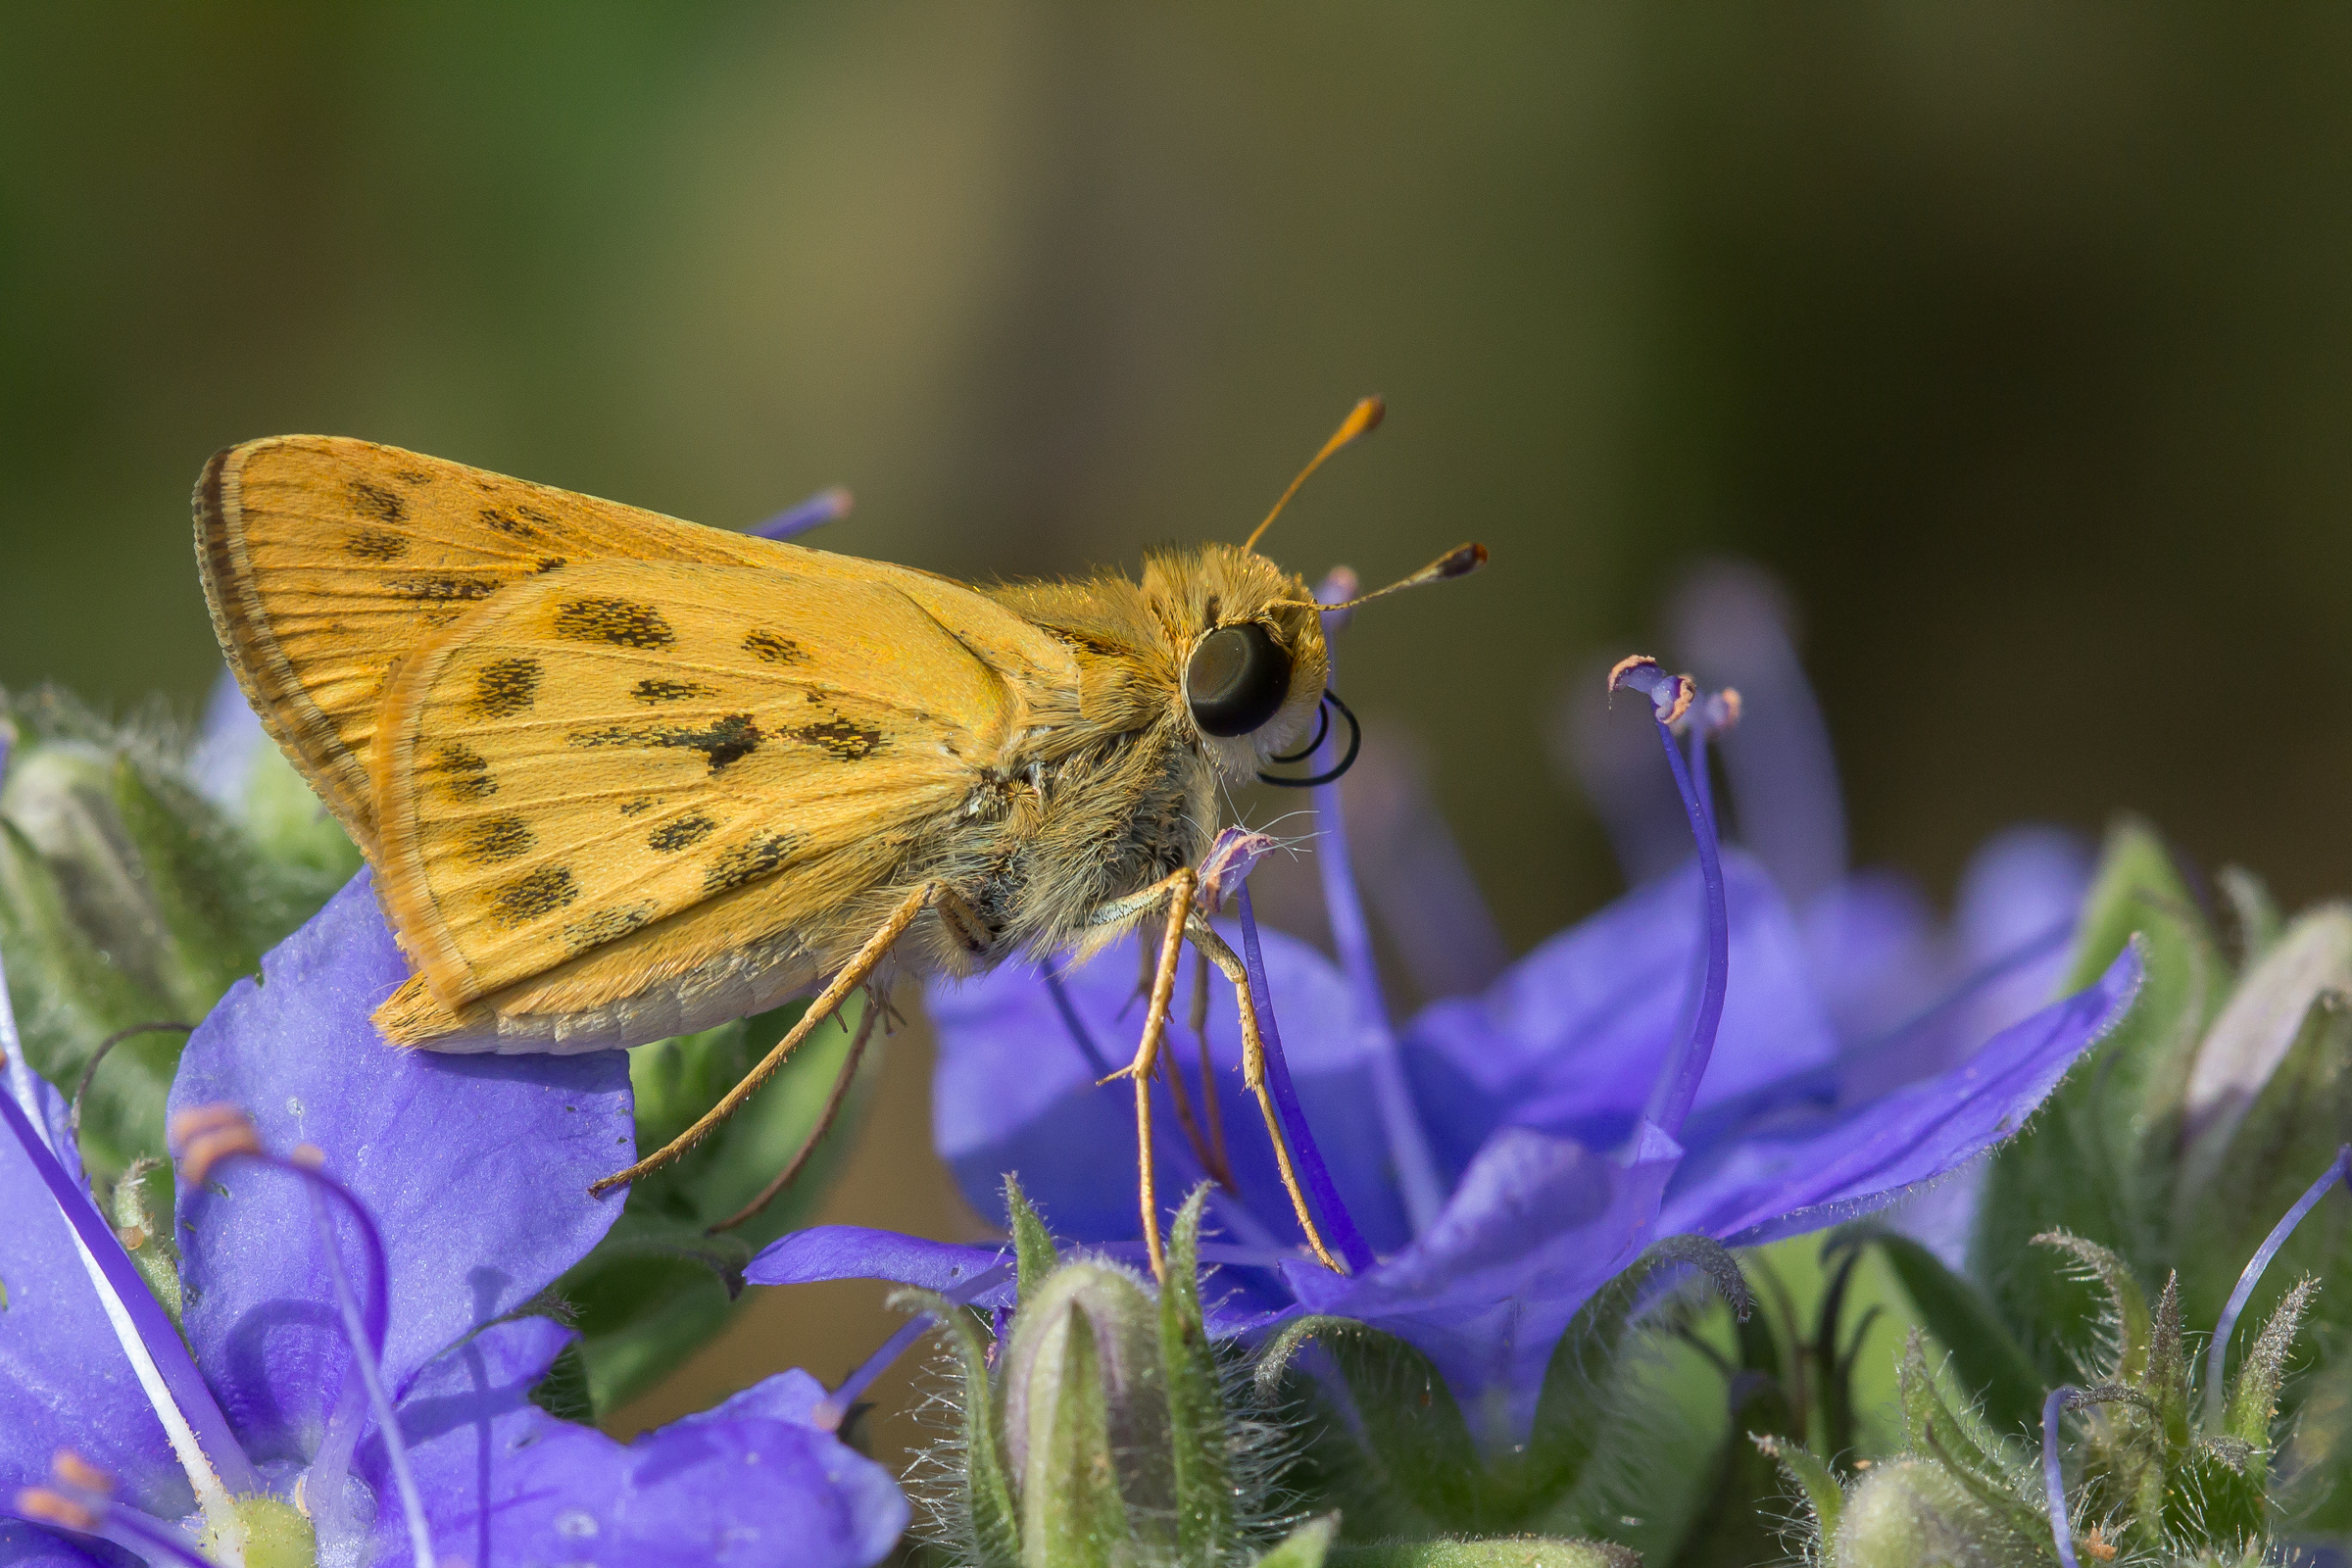 A Fiery Skipper just finishes drinking nectar.